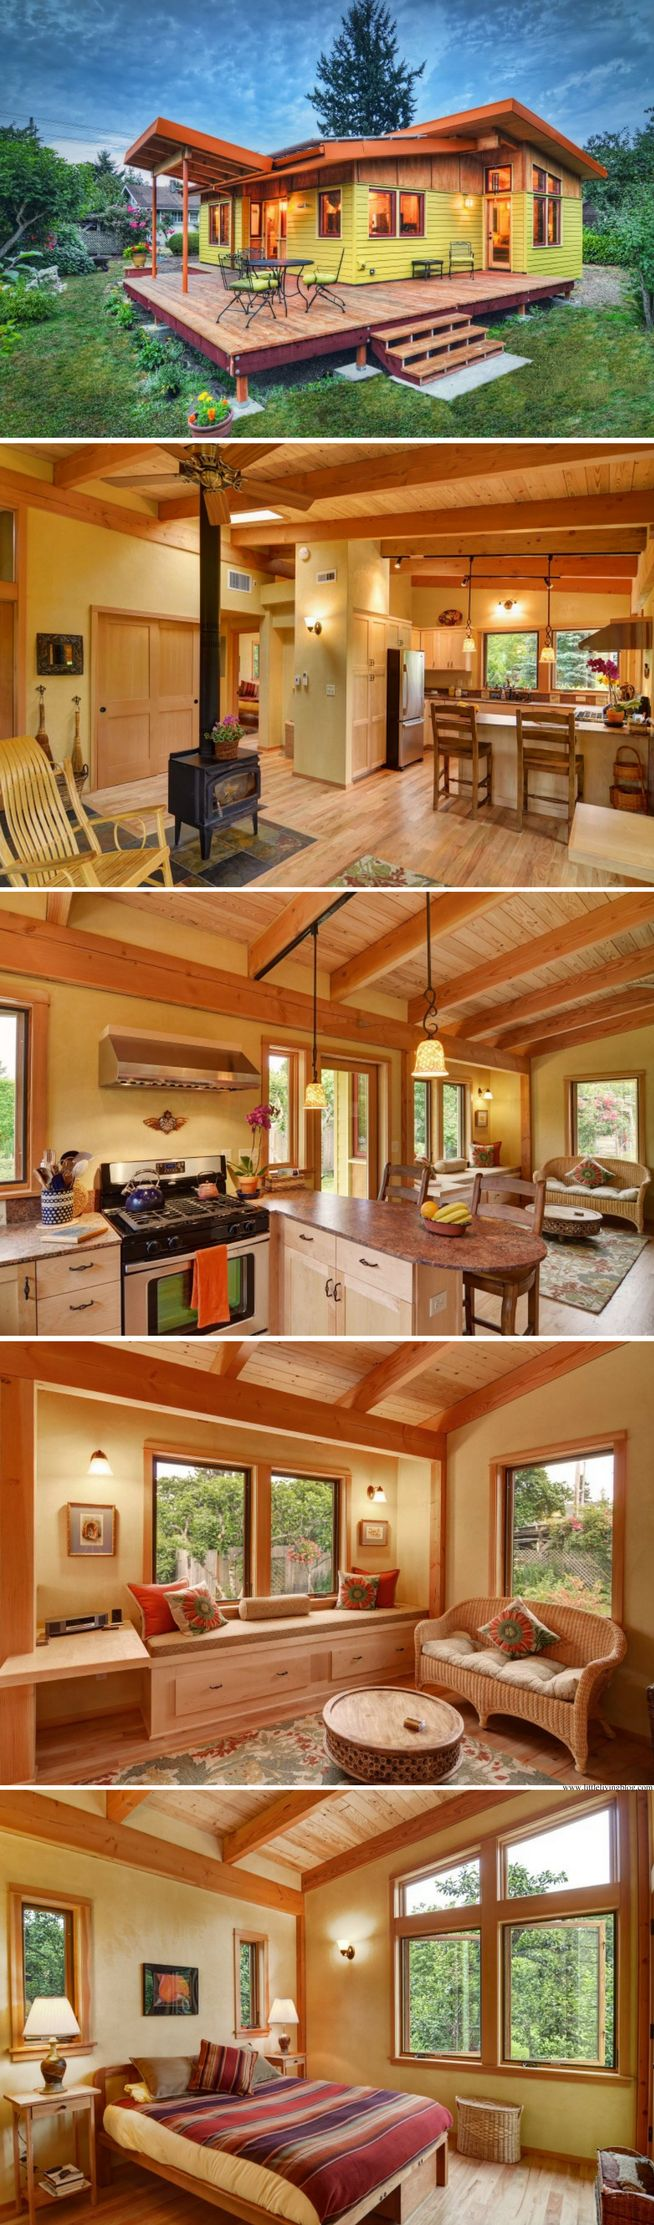 Best 25+ 800 sq ft house ideas on Pinterest | Small ...